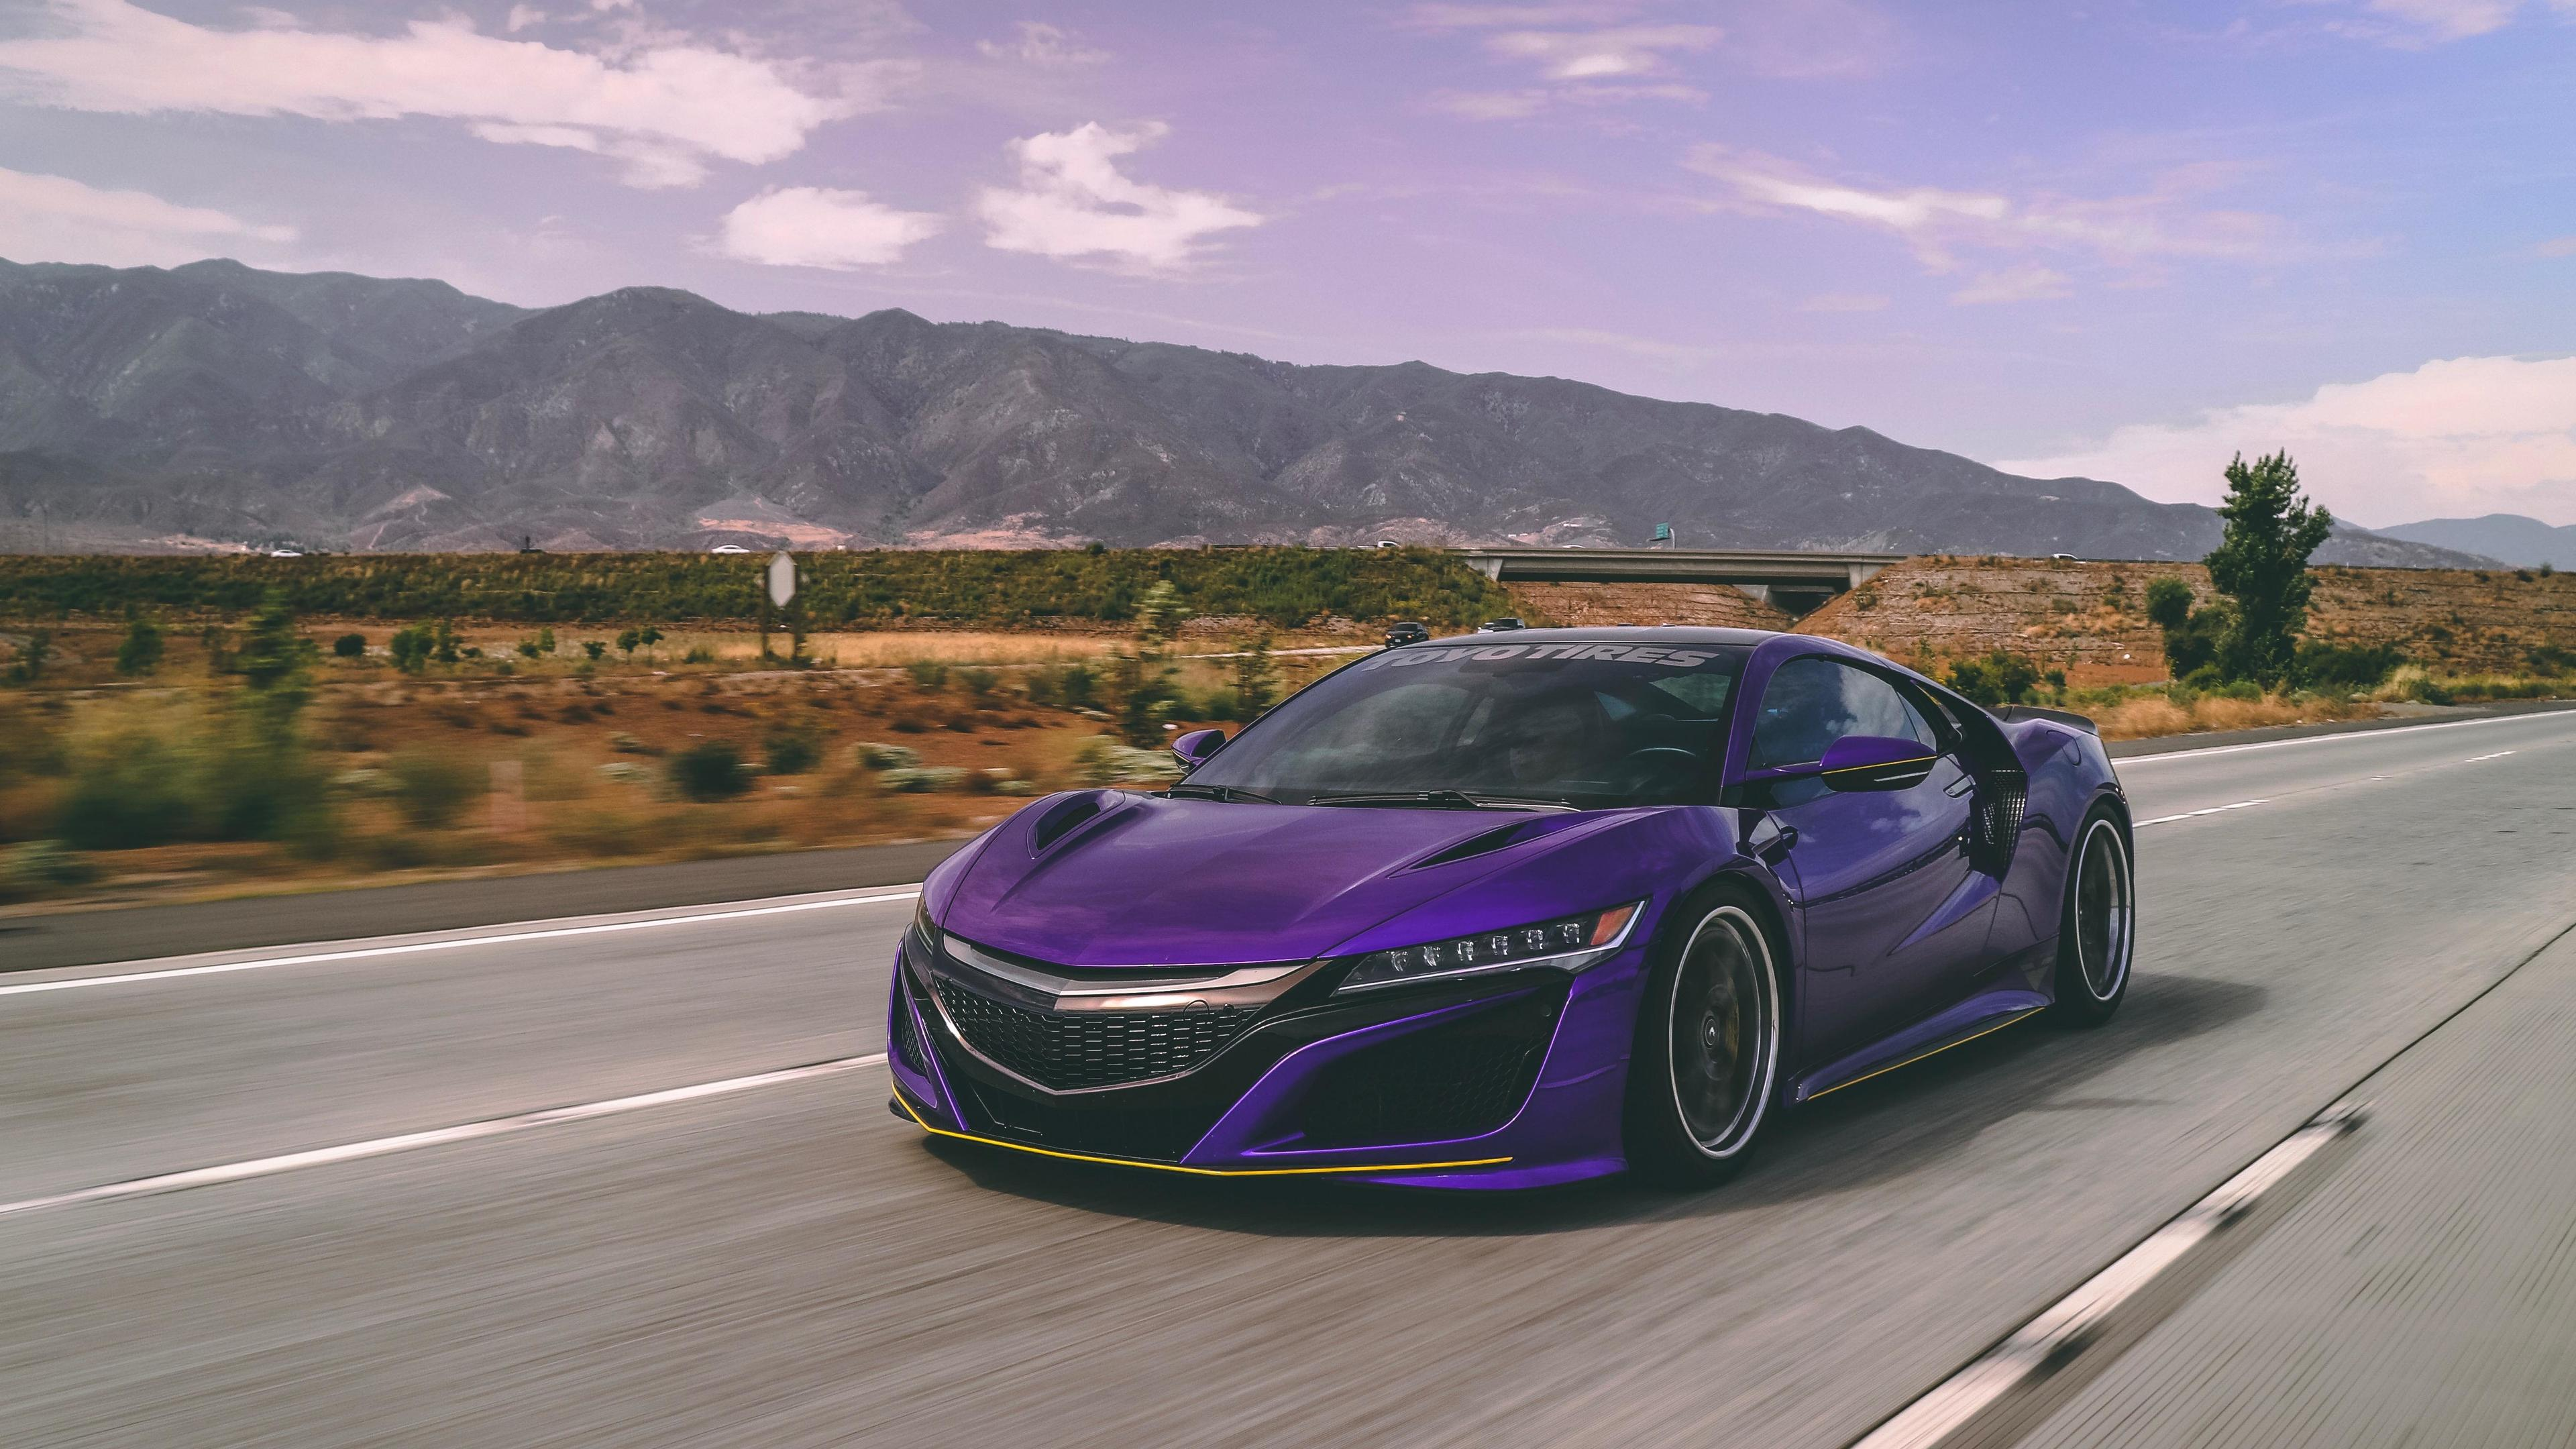 Wallpaper 4k Acura NSX Supercar 5k 2018 cars wallpapers, 4k